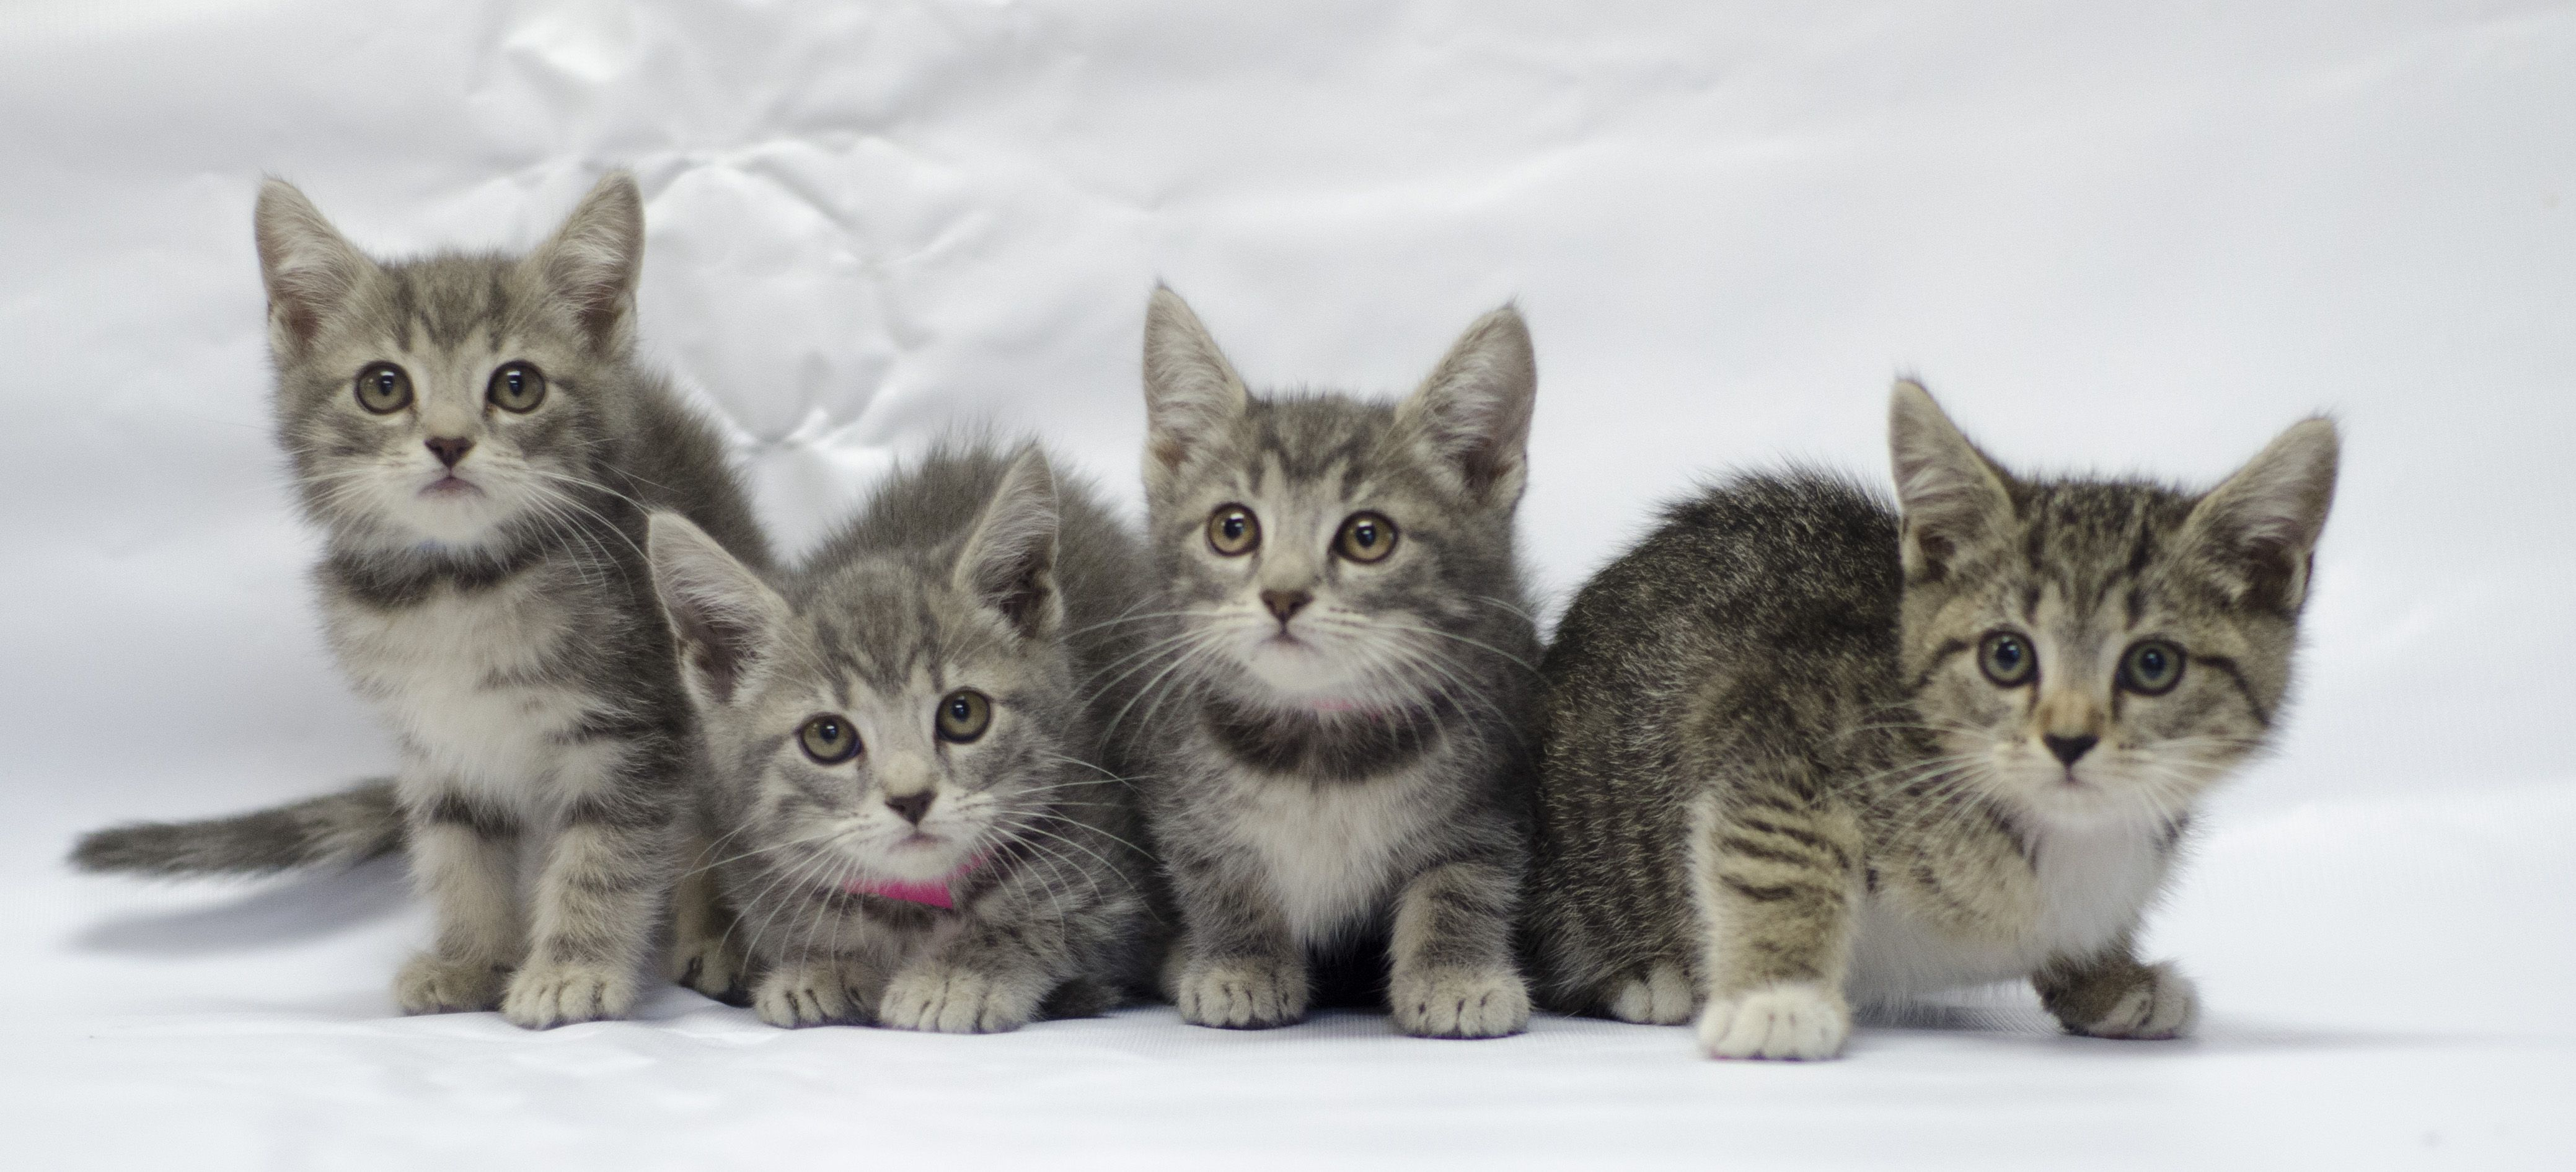 Need a snuggle Uber delivers kittens on demand